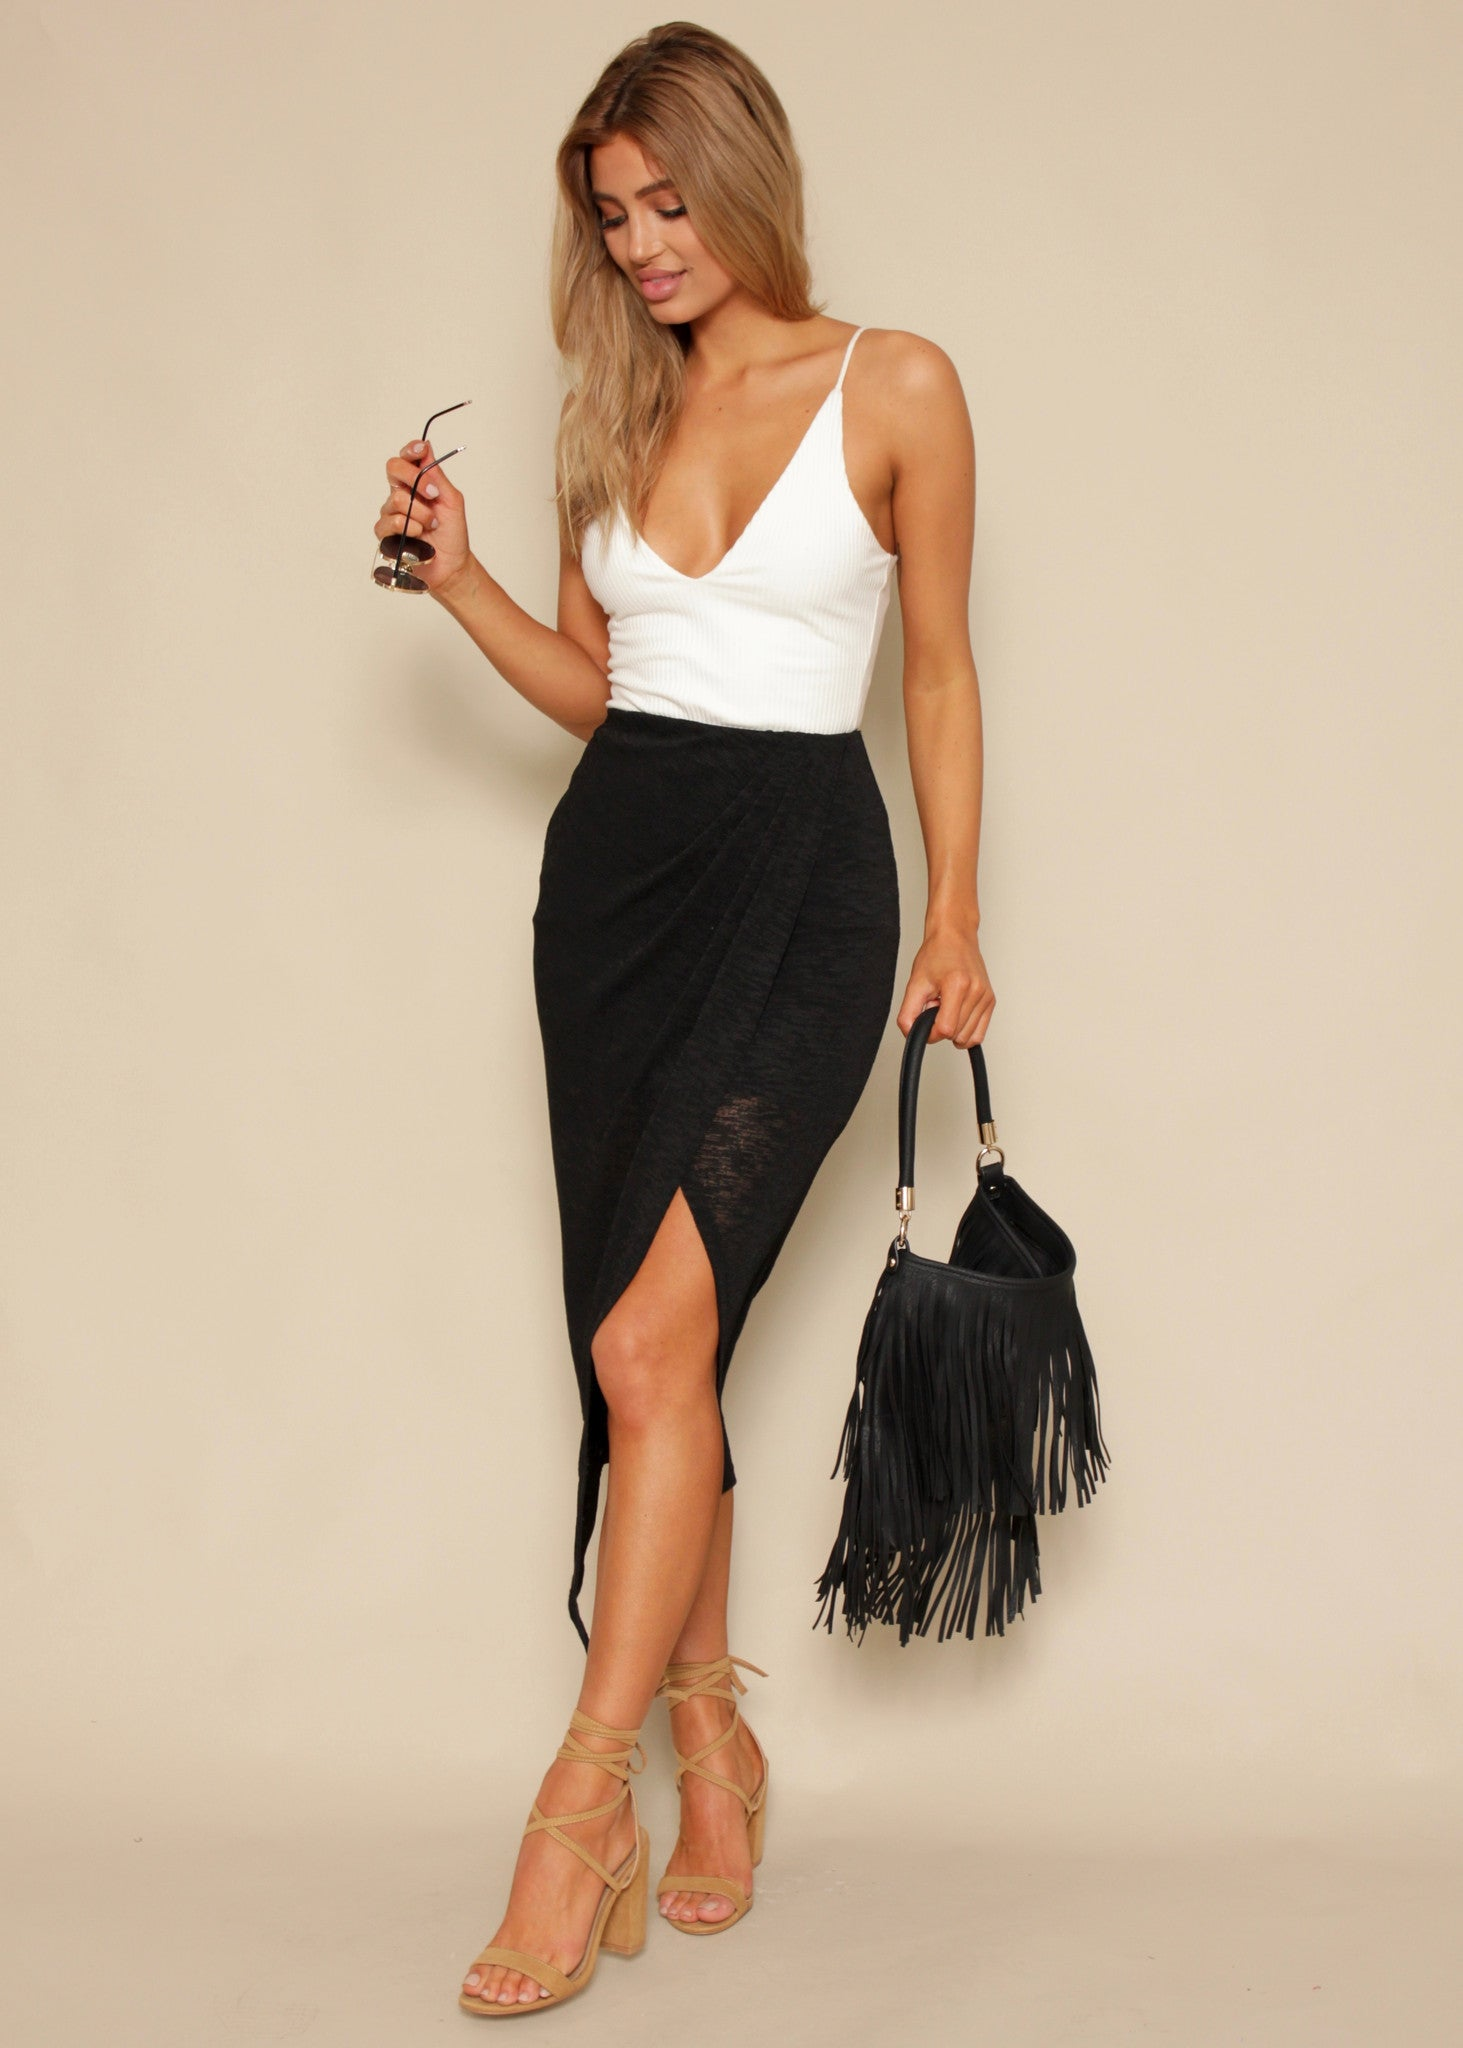 Body Language Midi Skirt - Black